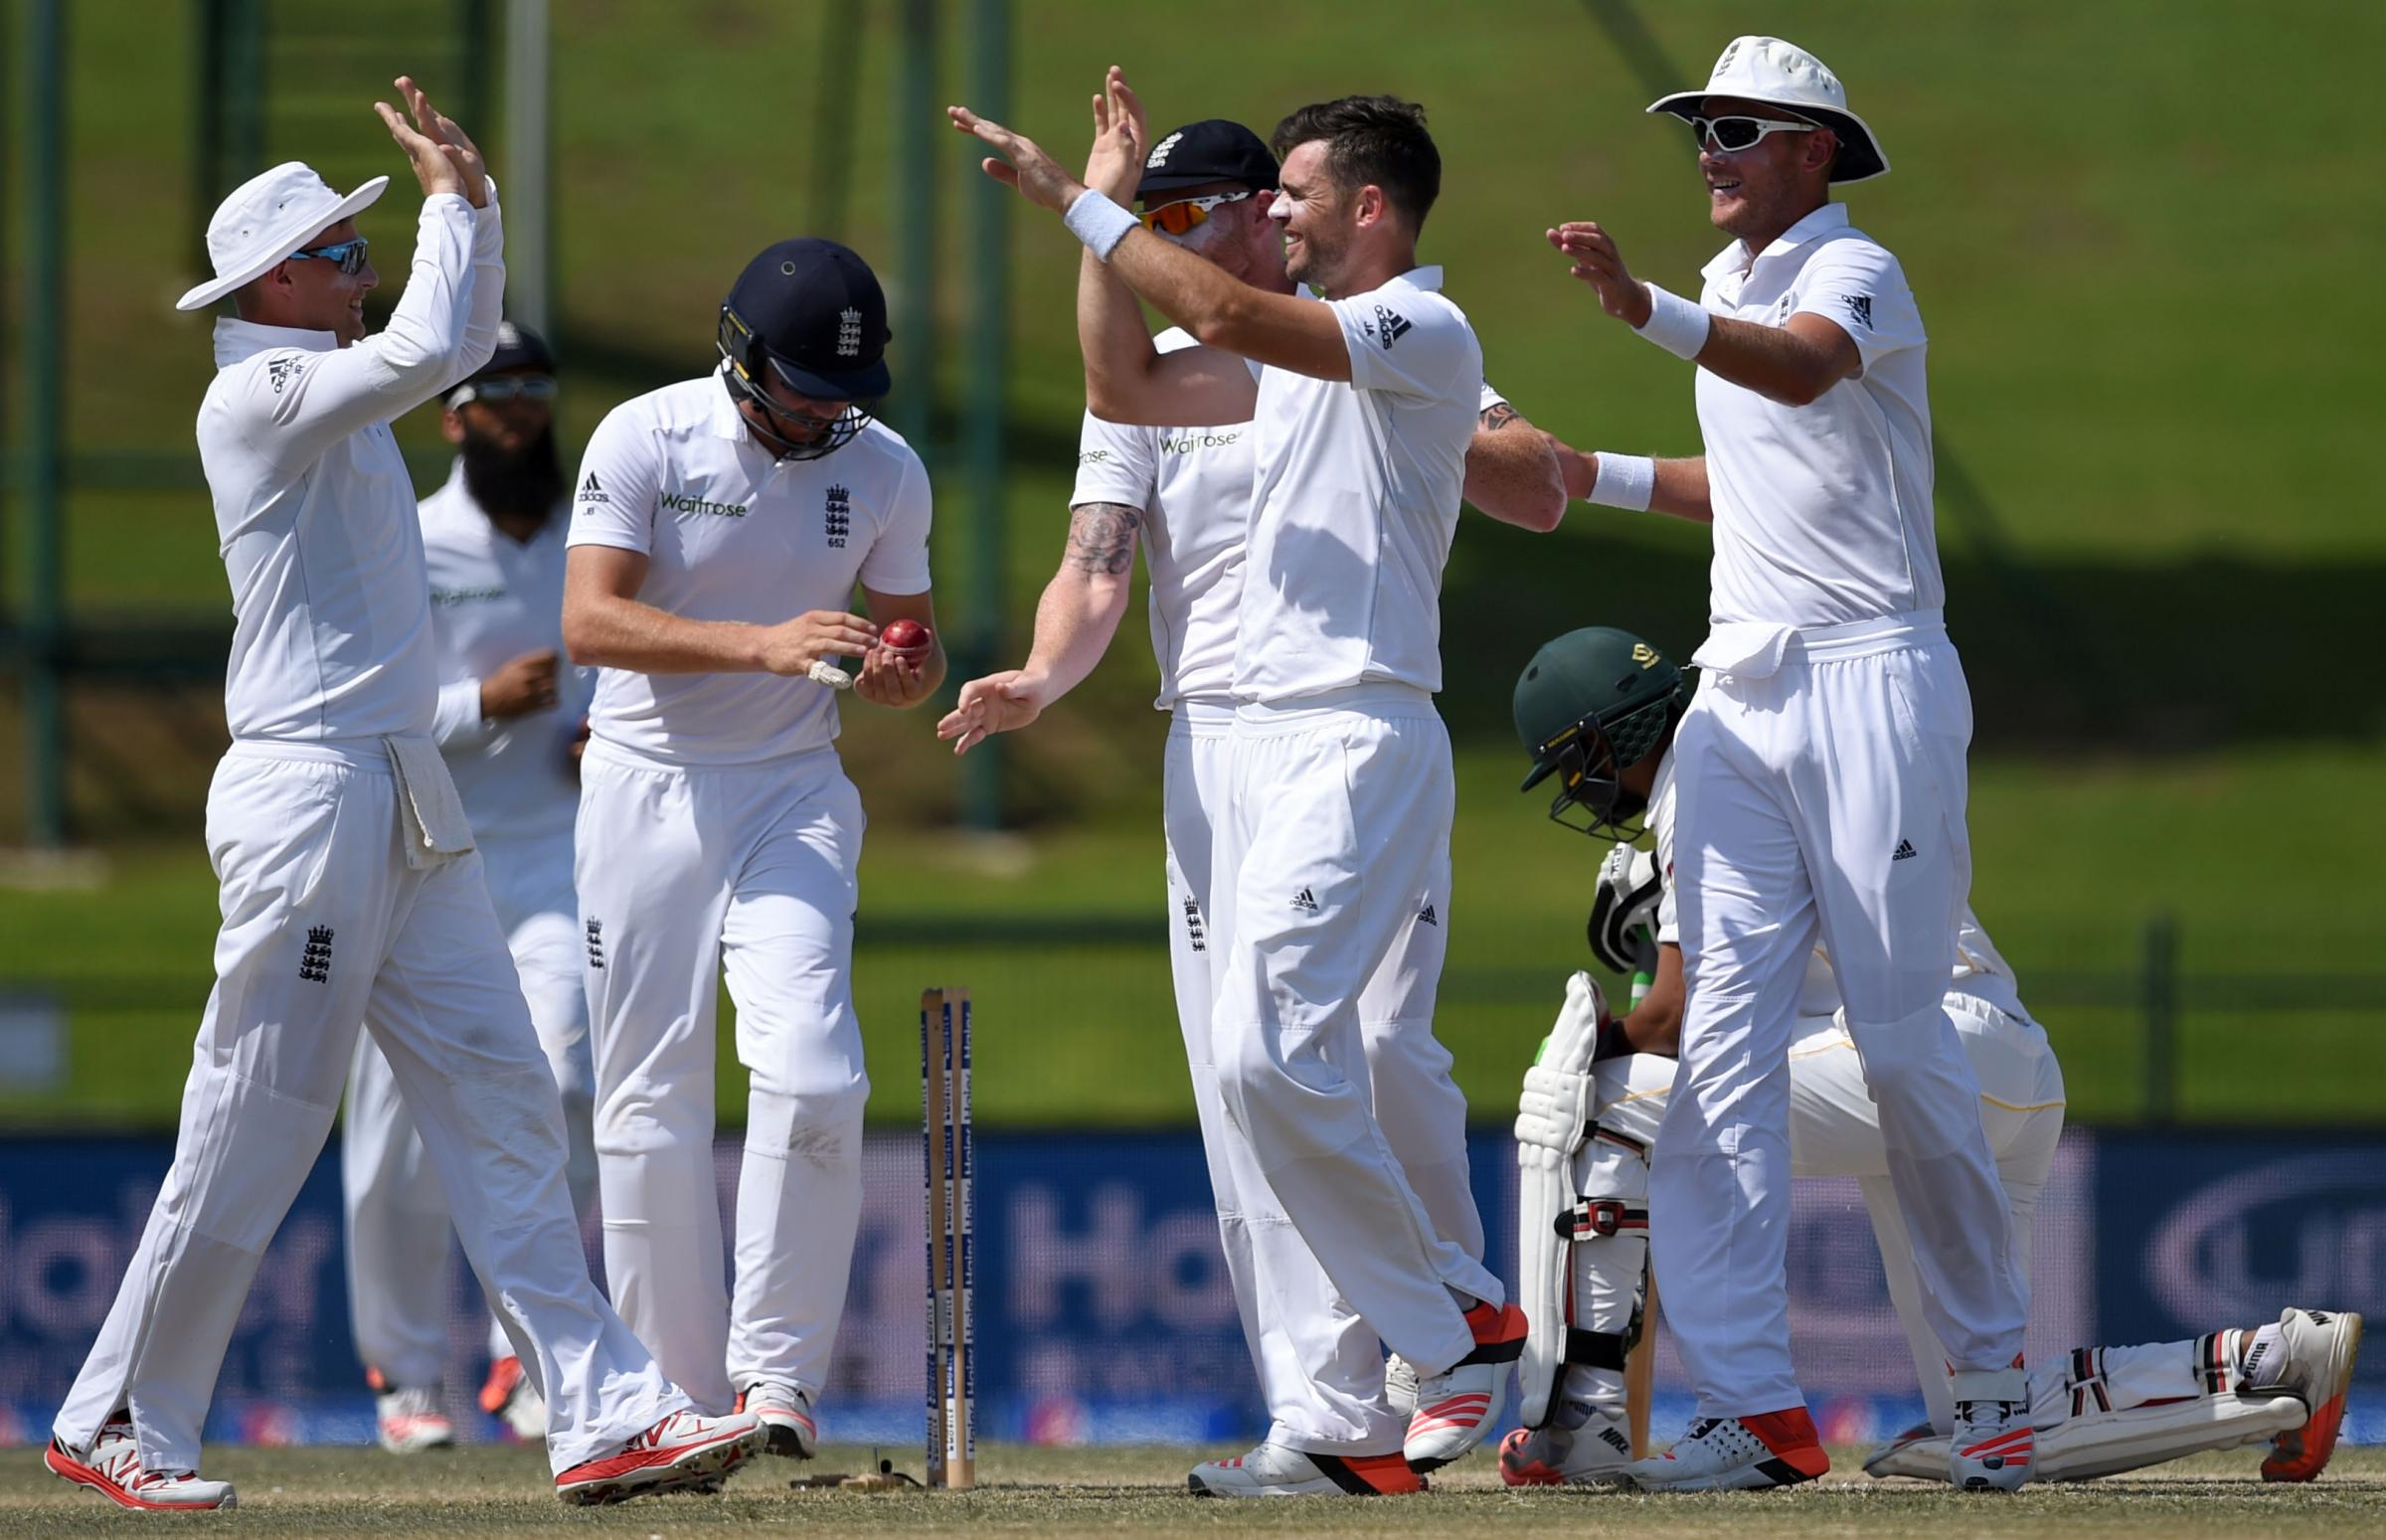 MAIN MAN: James Anderson, centre, celebrates with his England team-mates after taking a wicket